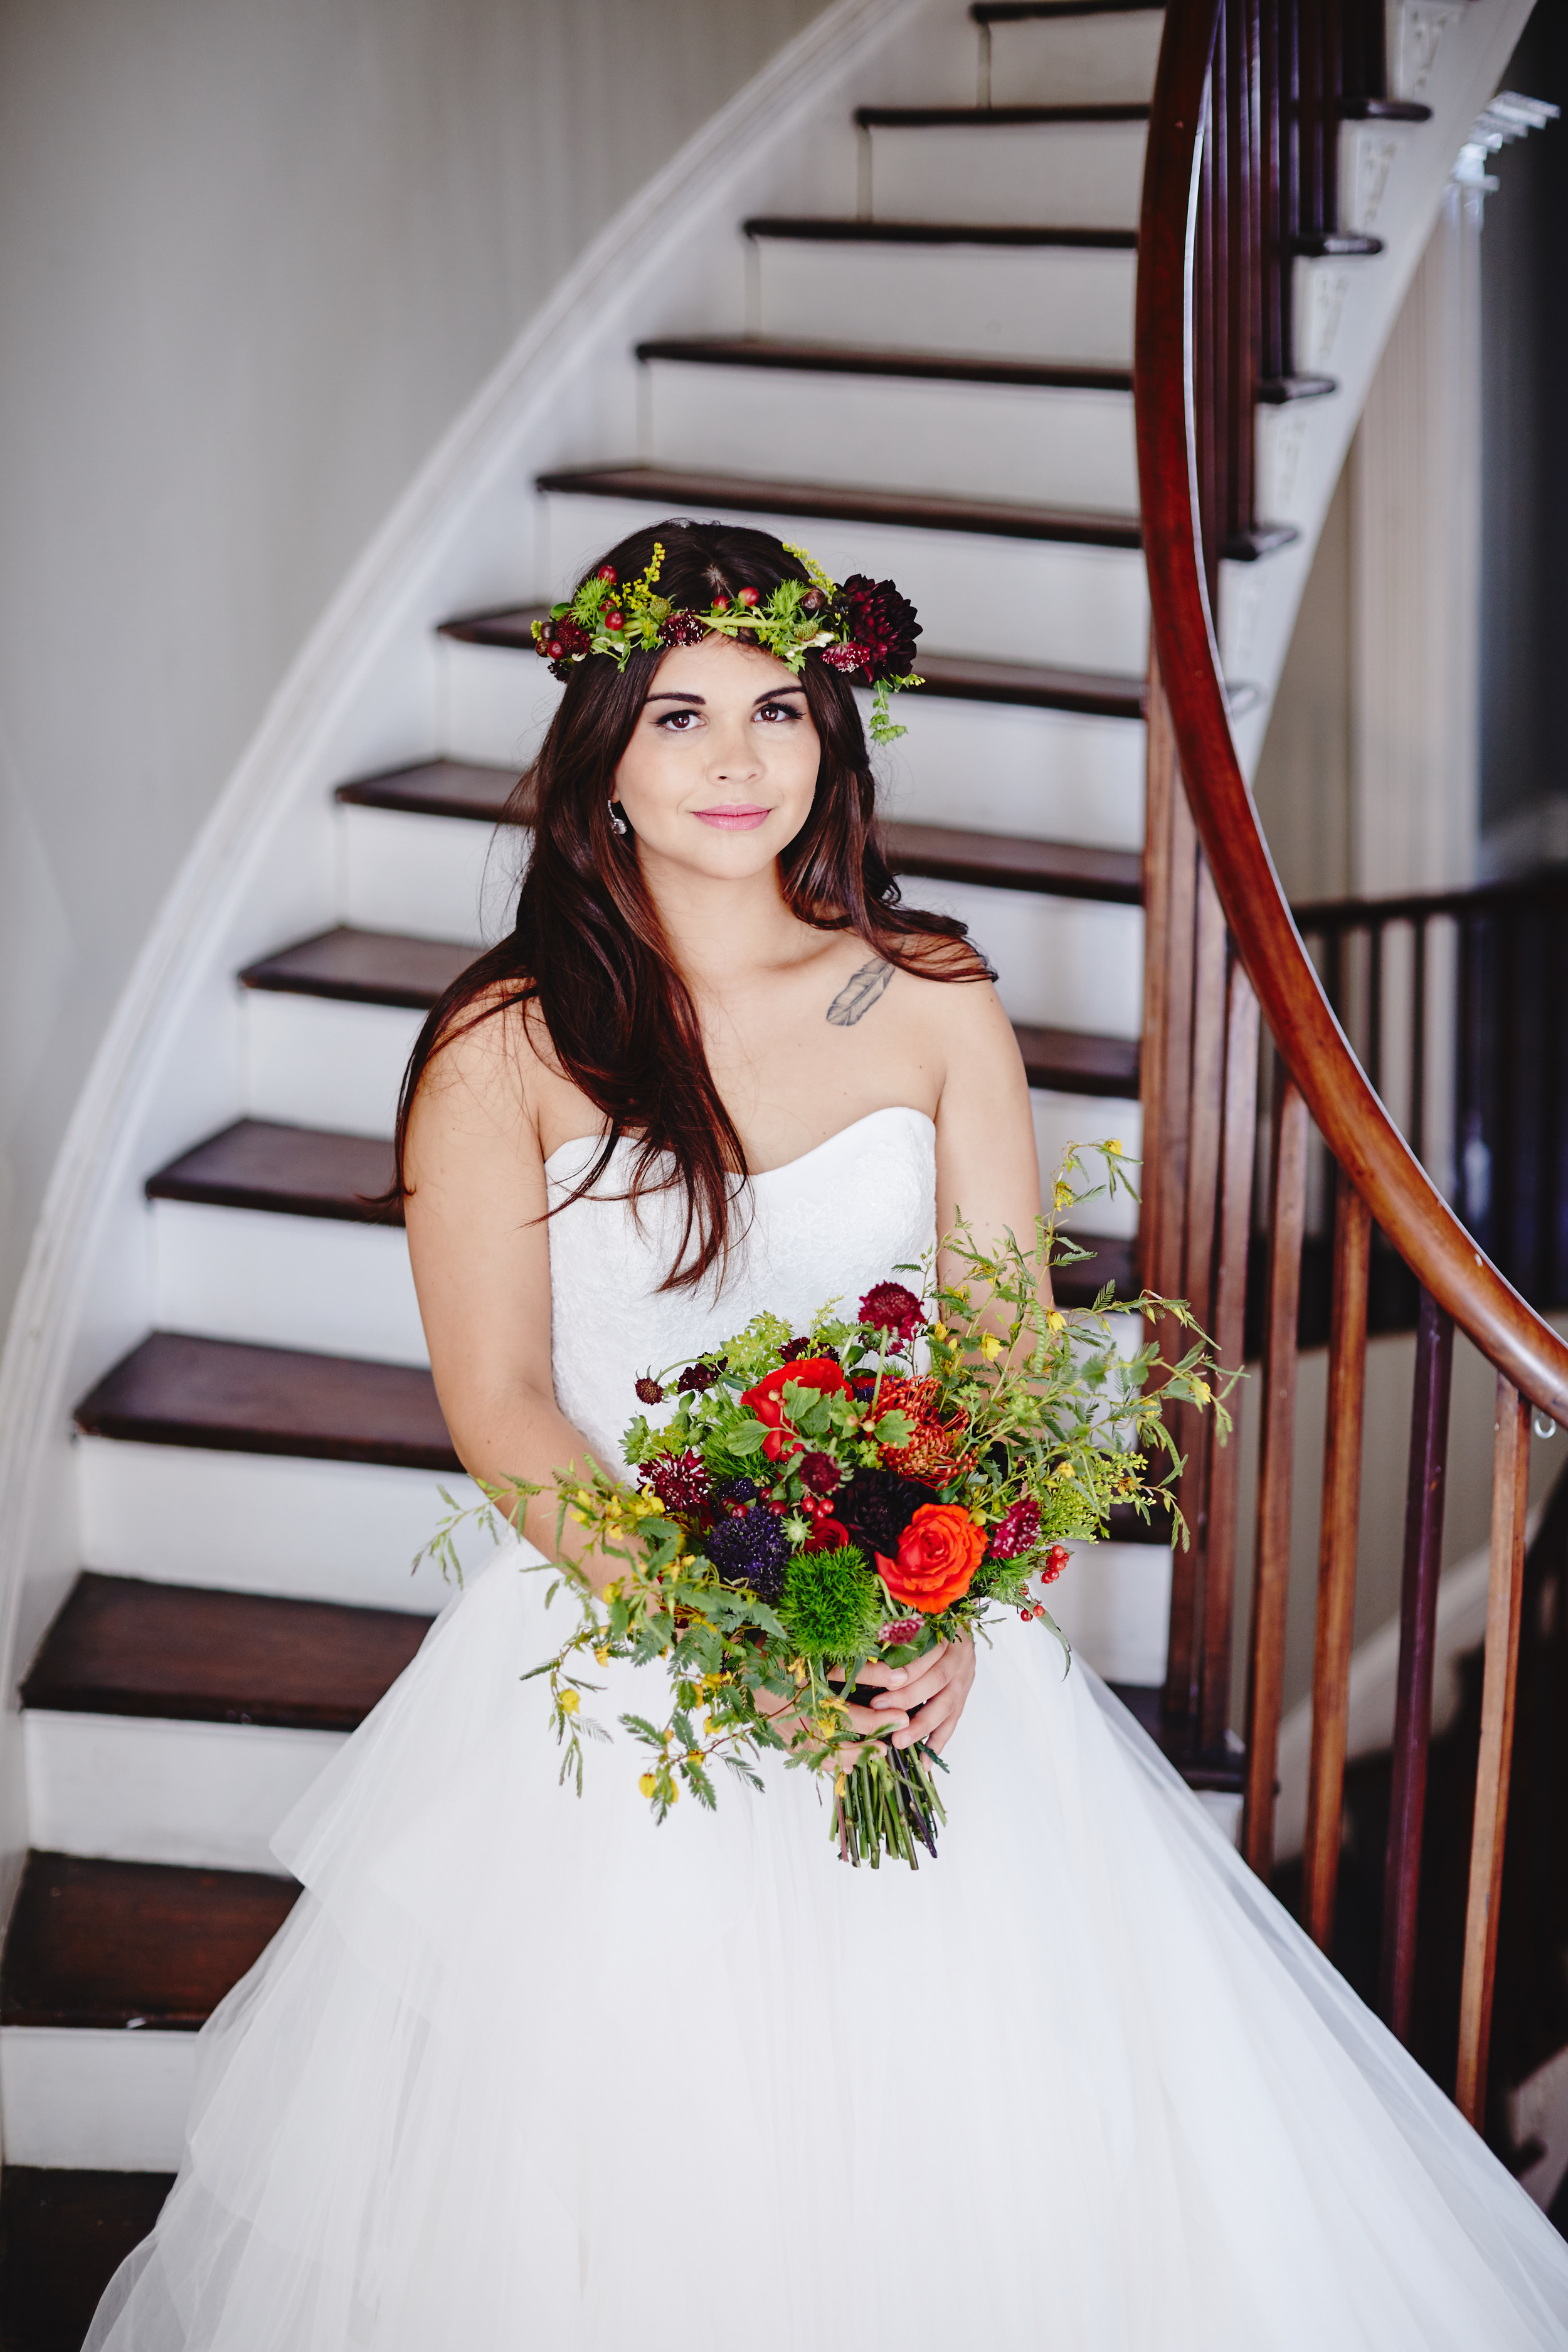 Styled_Session_Cherie_Bridal_Portraits_House_of_the_Bride 47.jpg